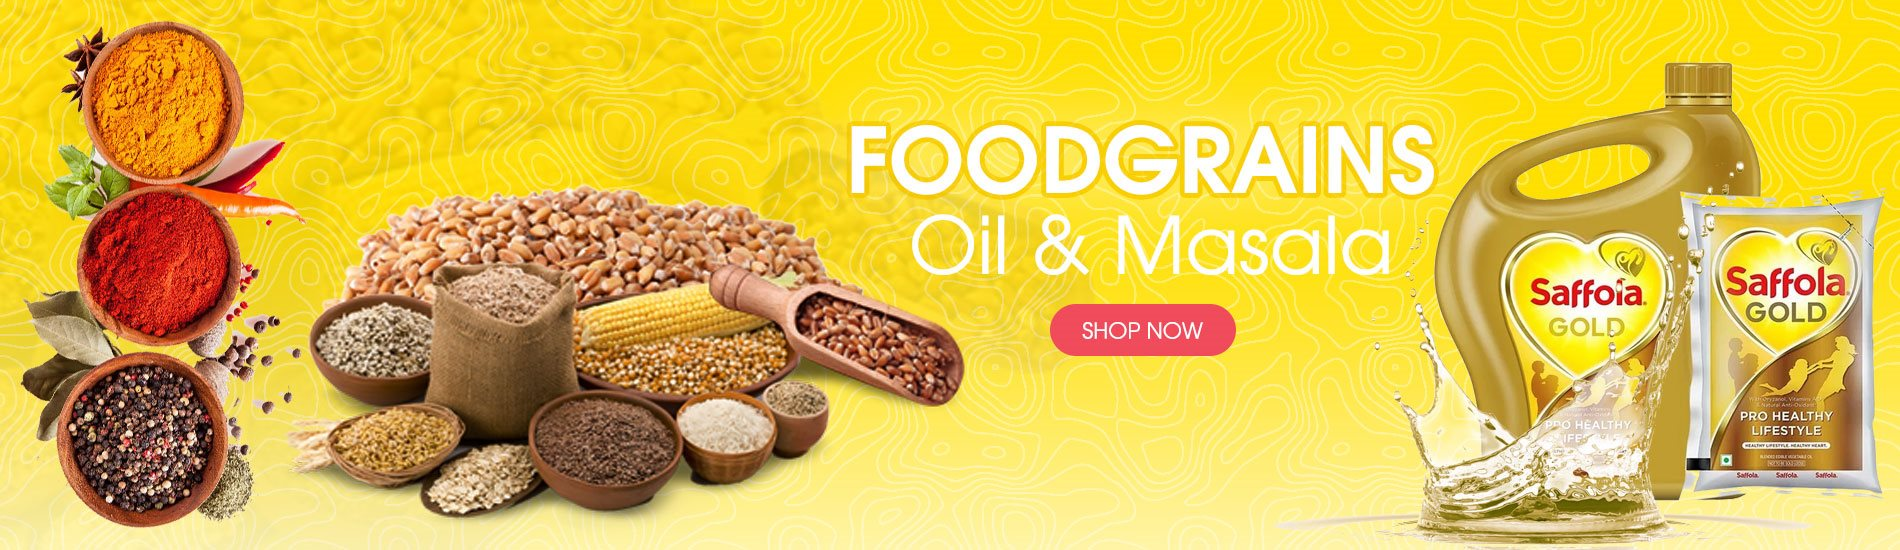 Foodgrains, Oil & Masala